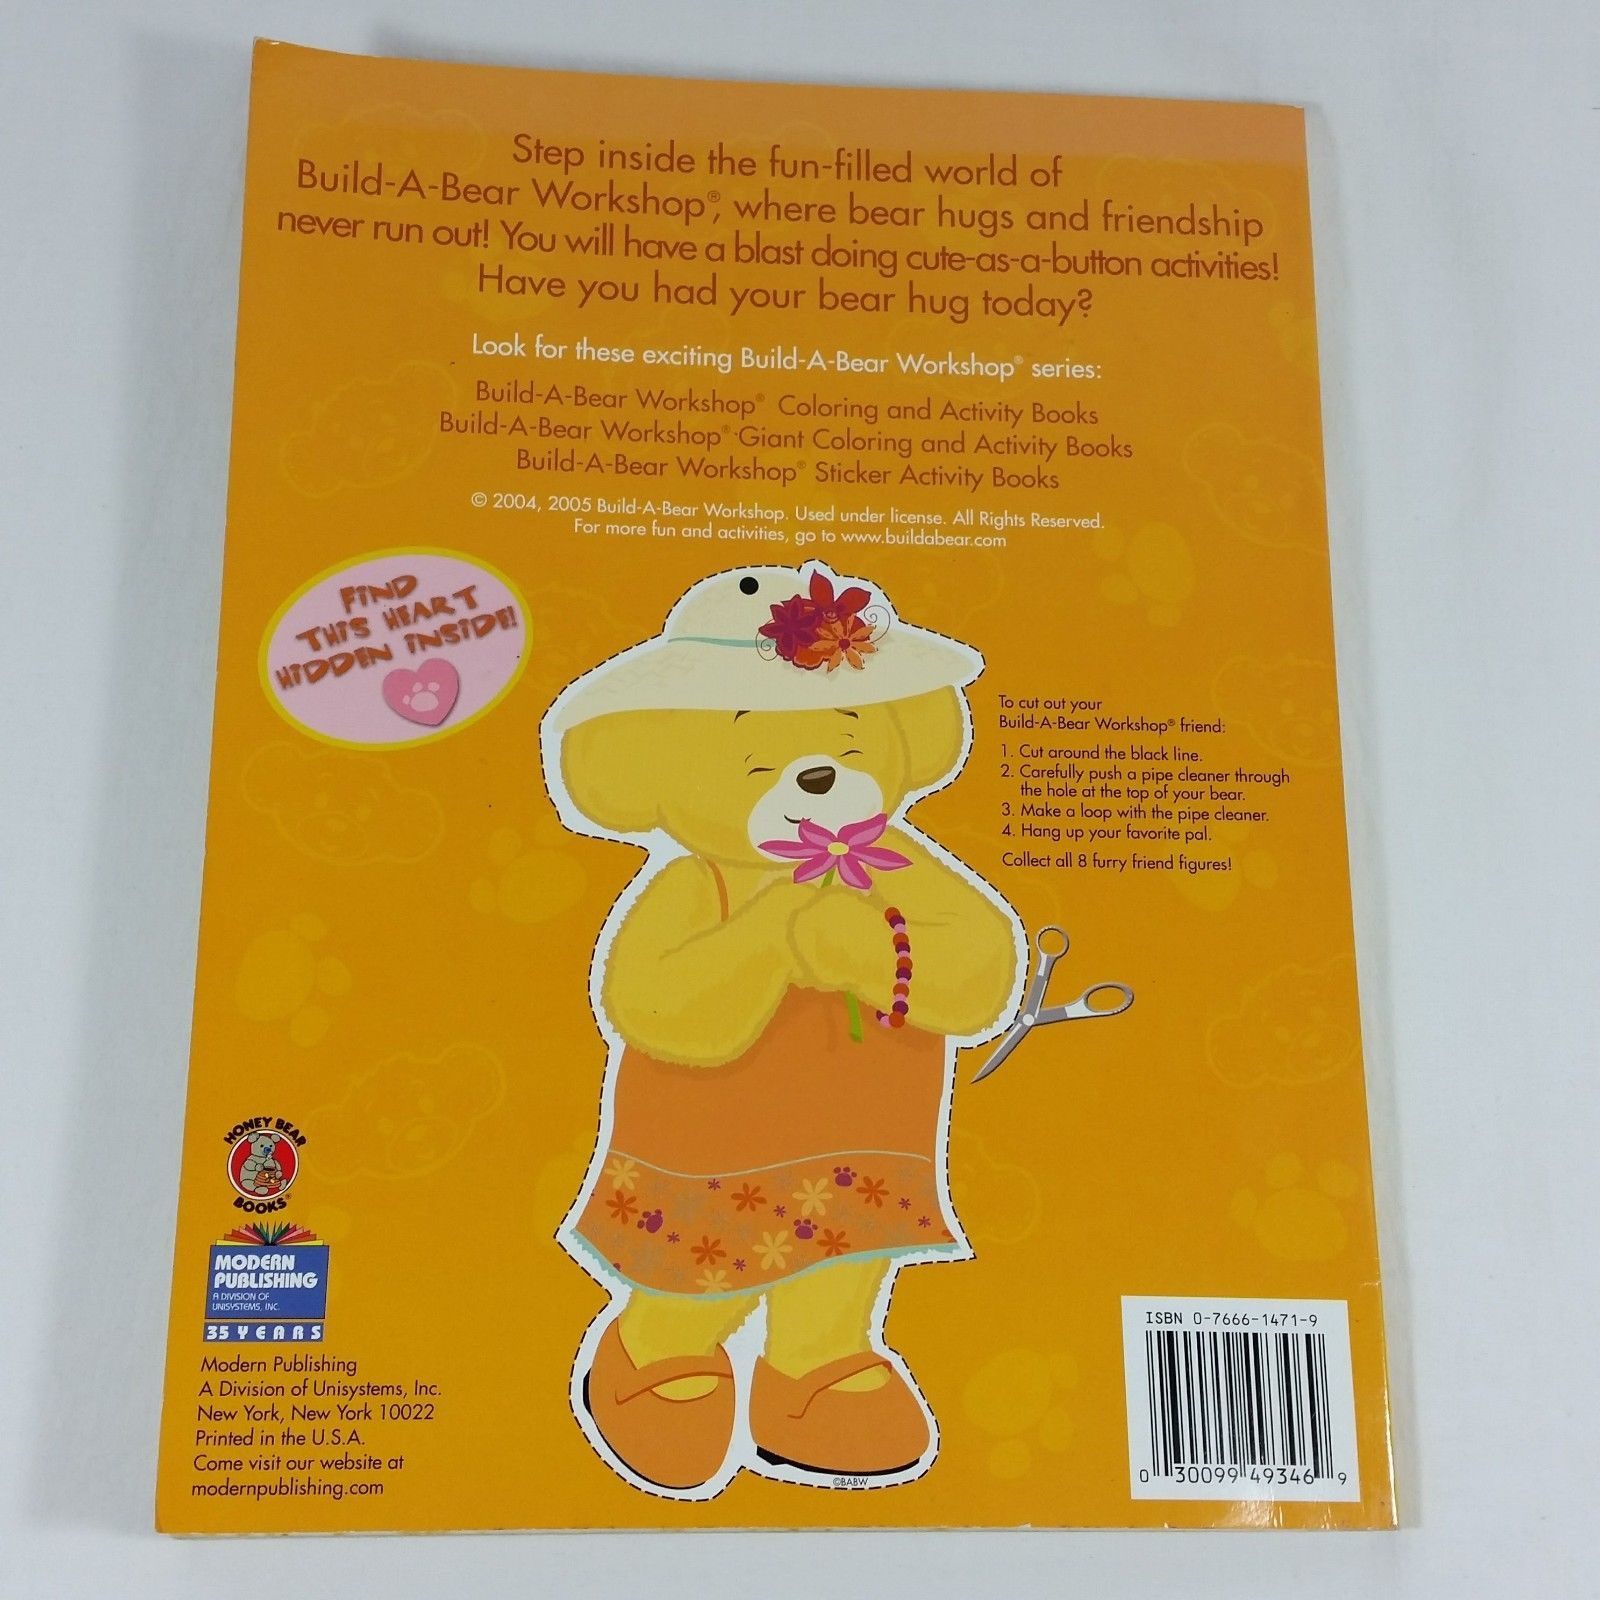 Build A Bear Workshop Giant Coloring and Activity Book Friendship Is Fur ever